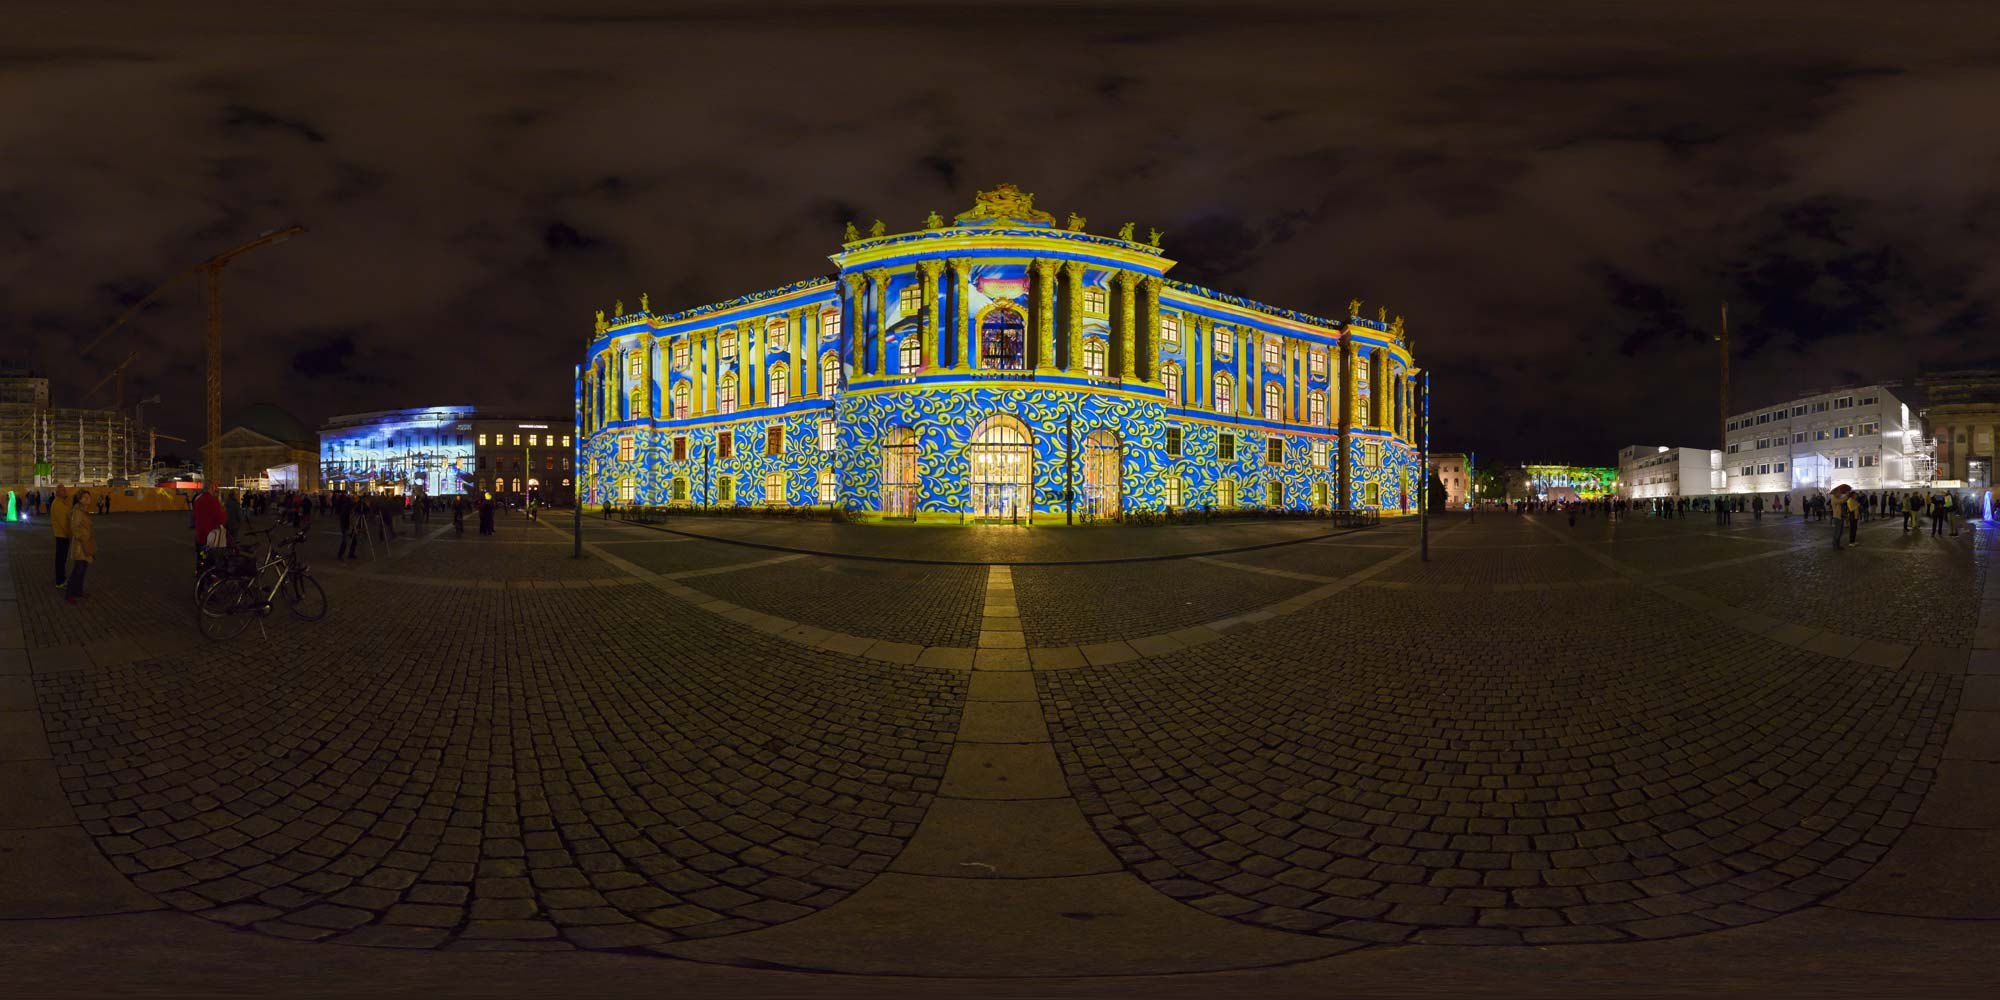 Panorama Berlin Festival of Lights - FOL 2014 Bebelplatz - FOL 2014 Bibliothek